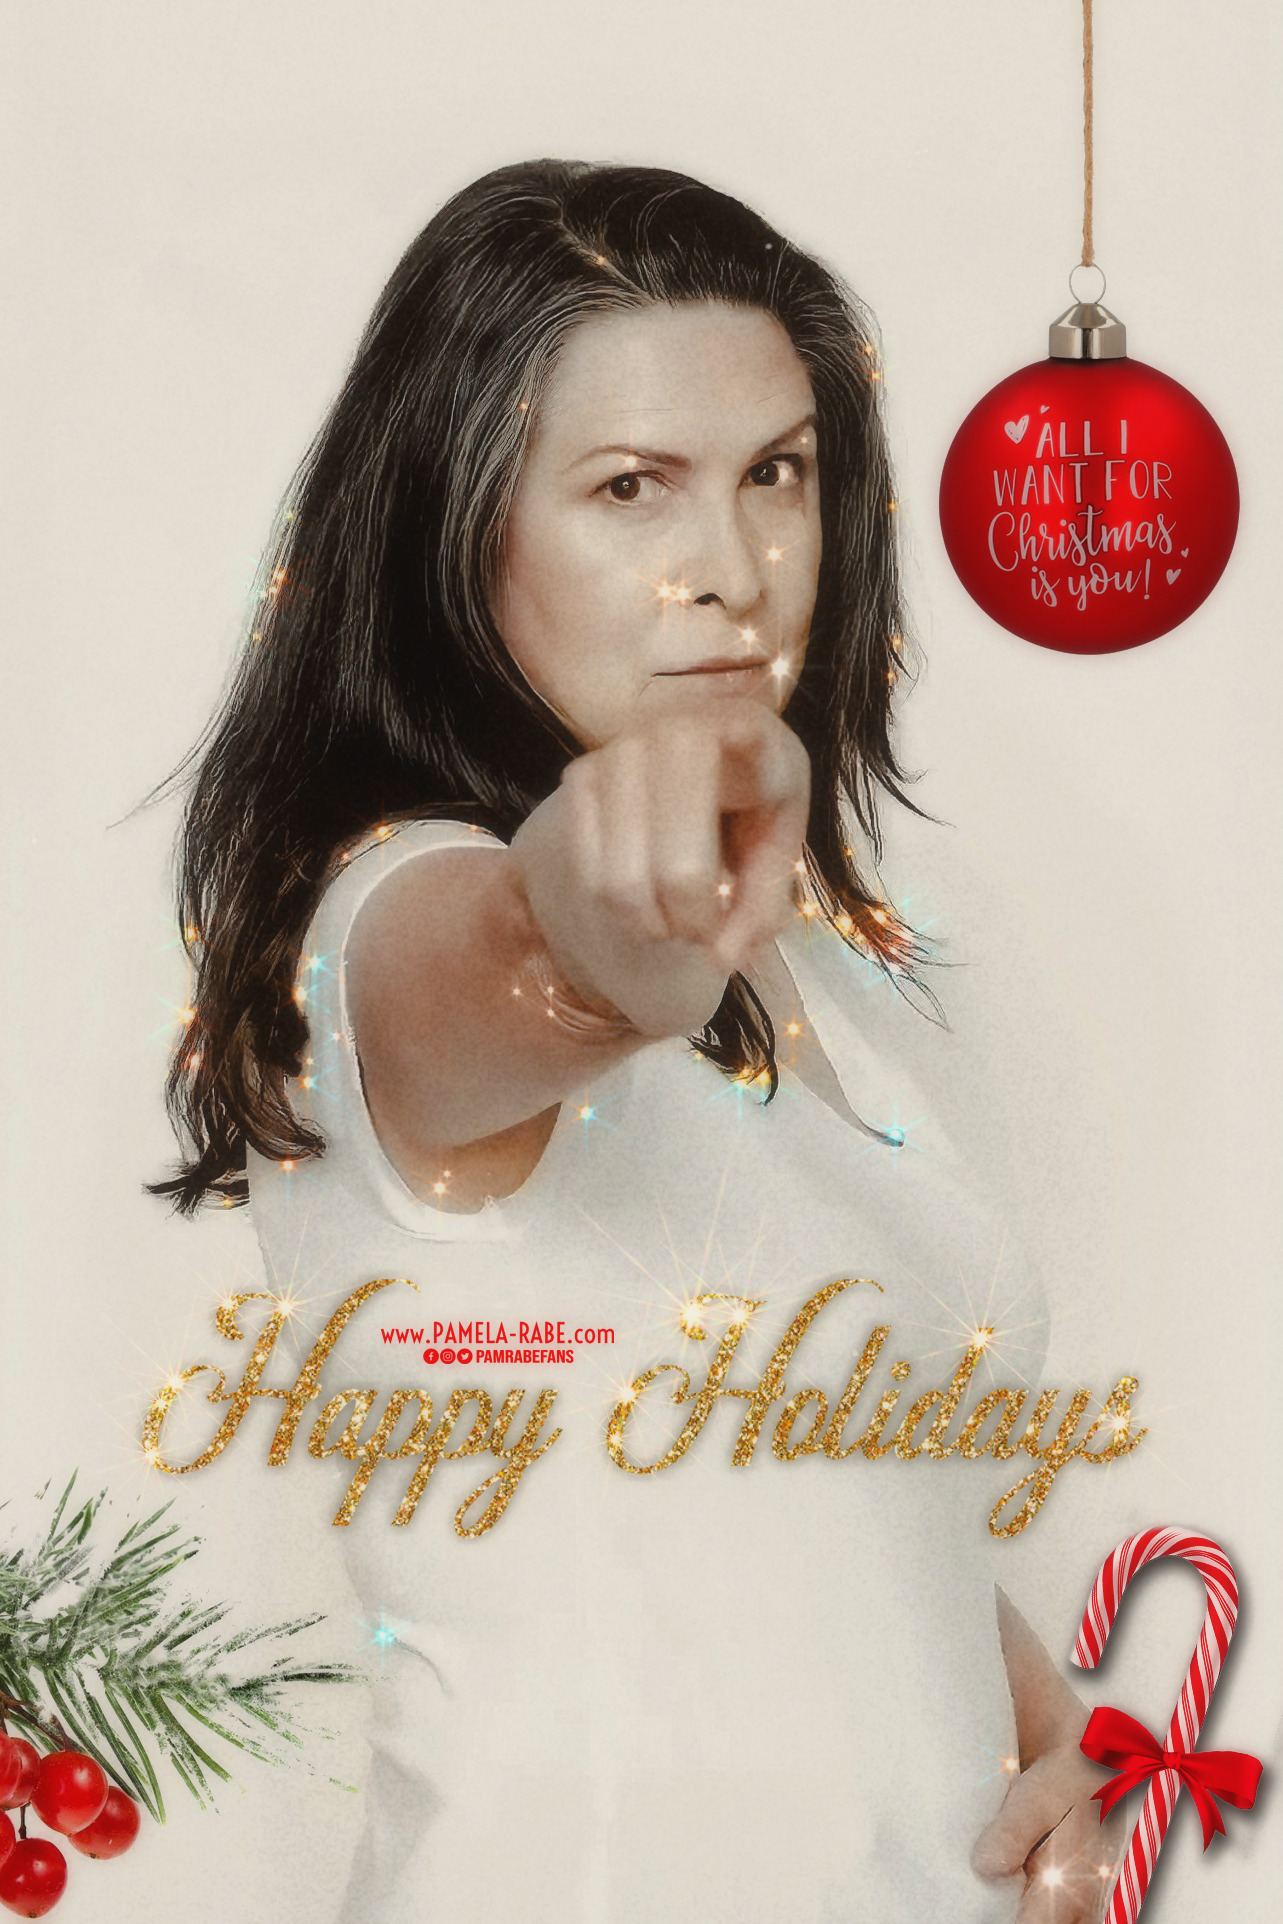 Happy Holidays 2020 from Sarina | Pamela-Rabe.com